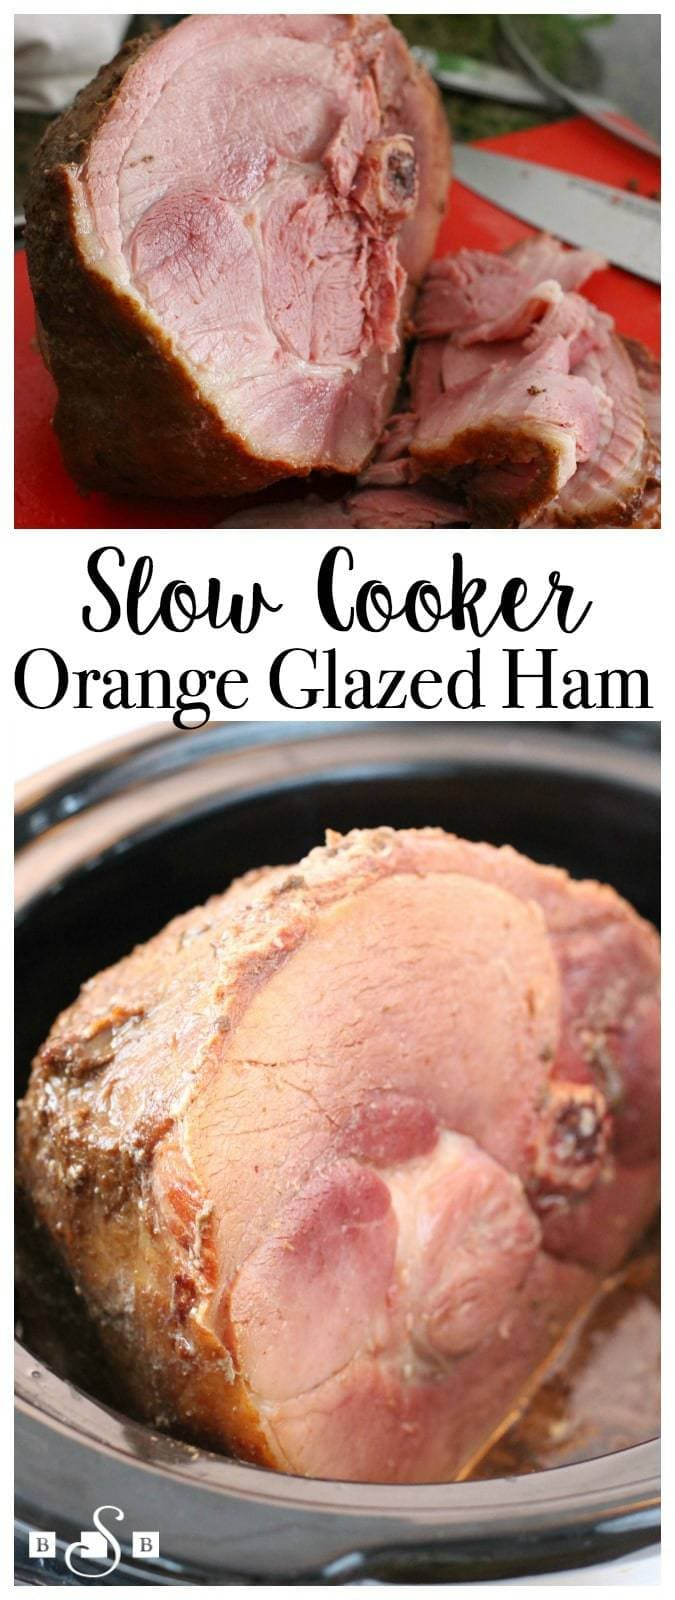 Years ago I experimented with cooking a ham in the crockpot and it worked out so well I've cooked them that way since! You can check out one of my favorite Slow Cooker Ham recipes here- but this time I needed something even faster and easier. And you know what- it was incredible! I think this might be my new favorite way to slow cook a ham!